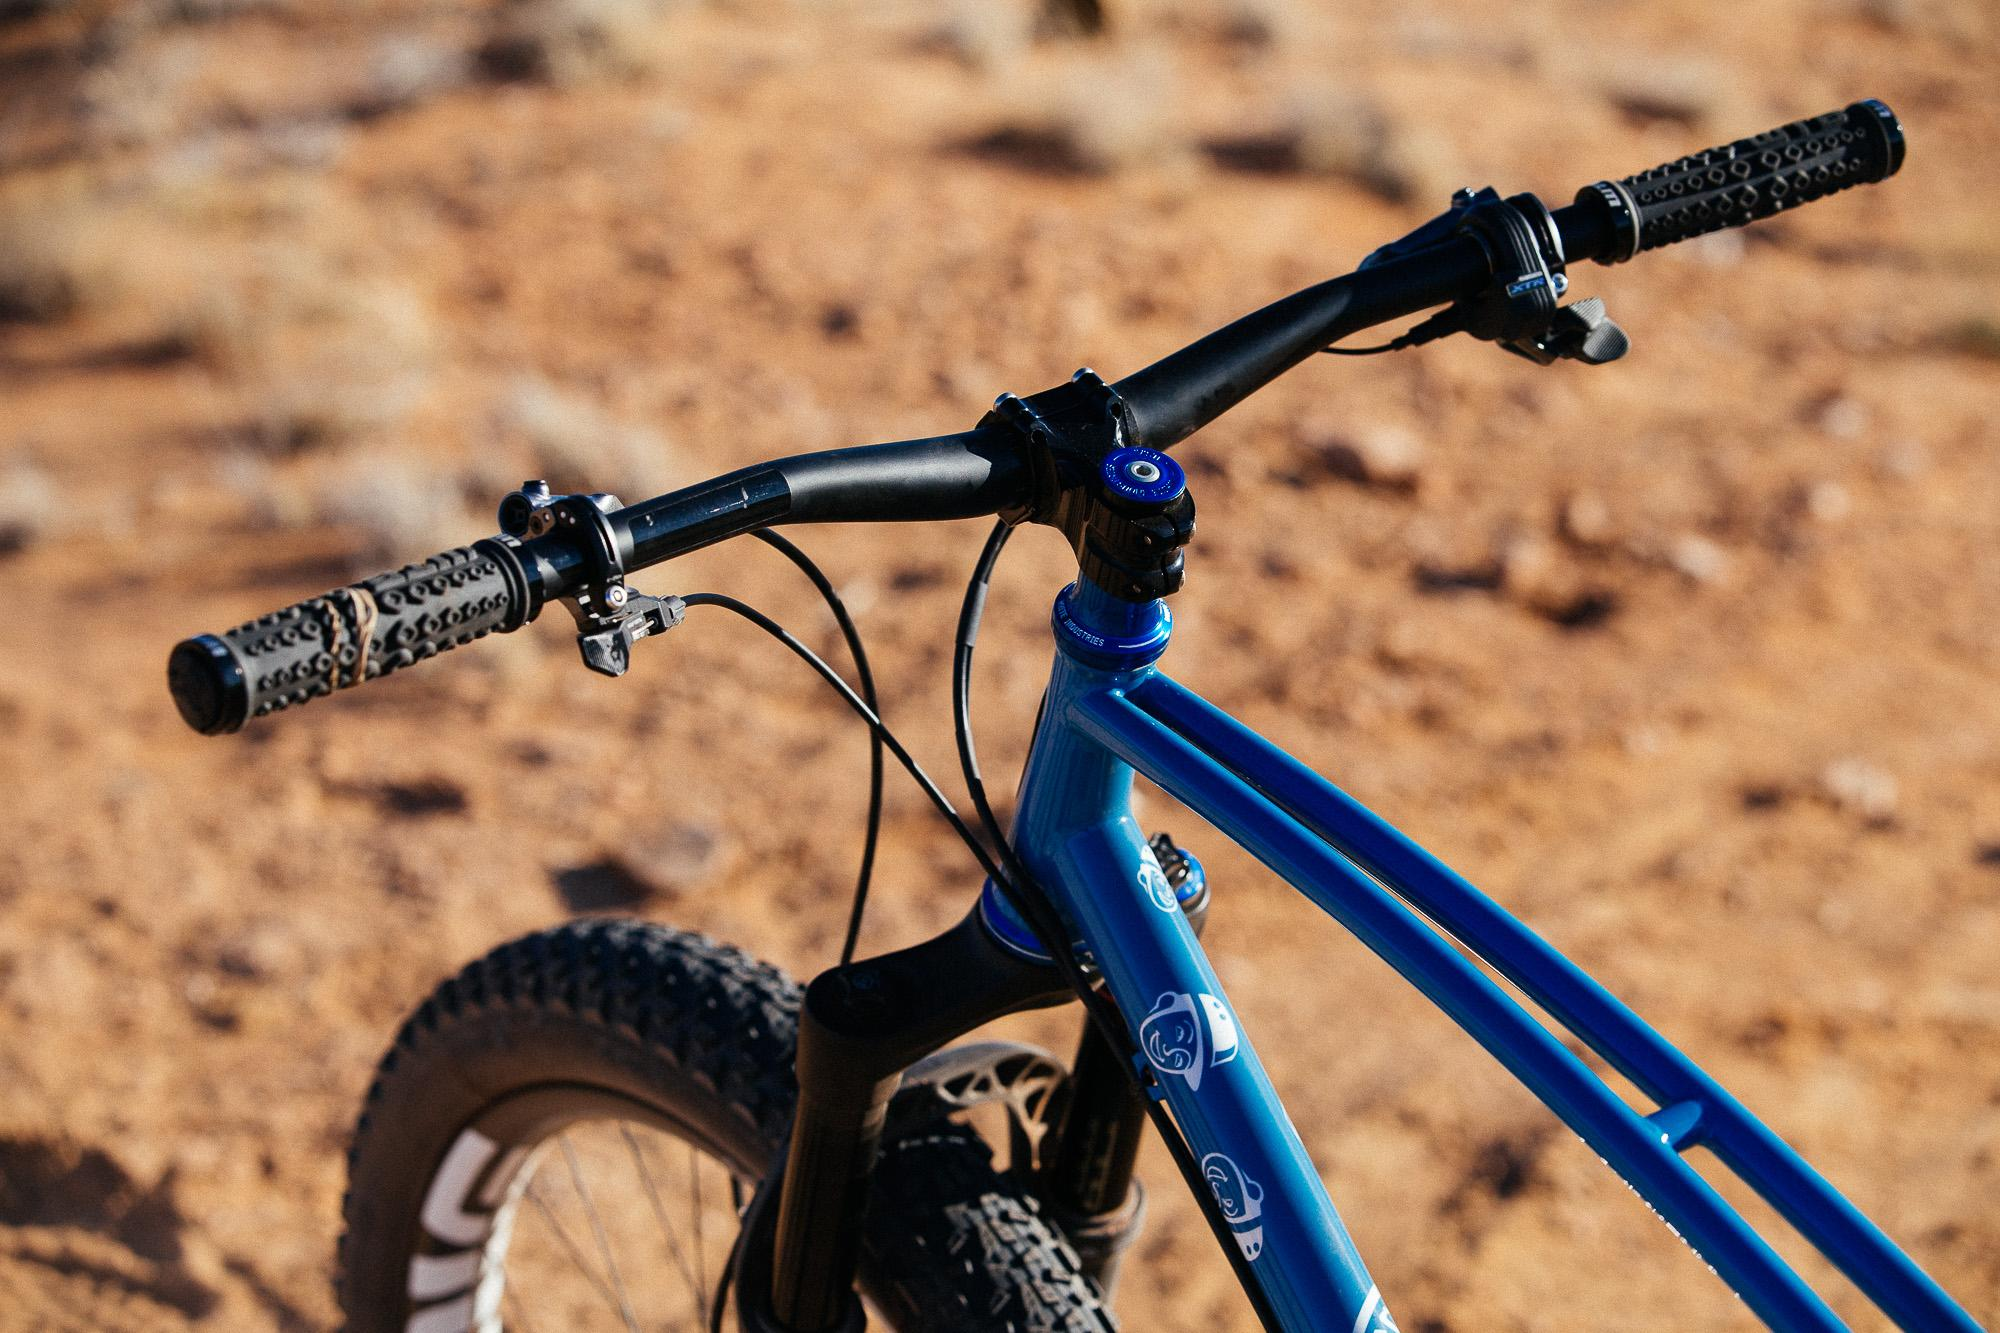 Curtis Inglis' 29+ Retrotec Hardtail